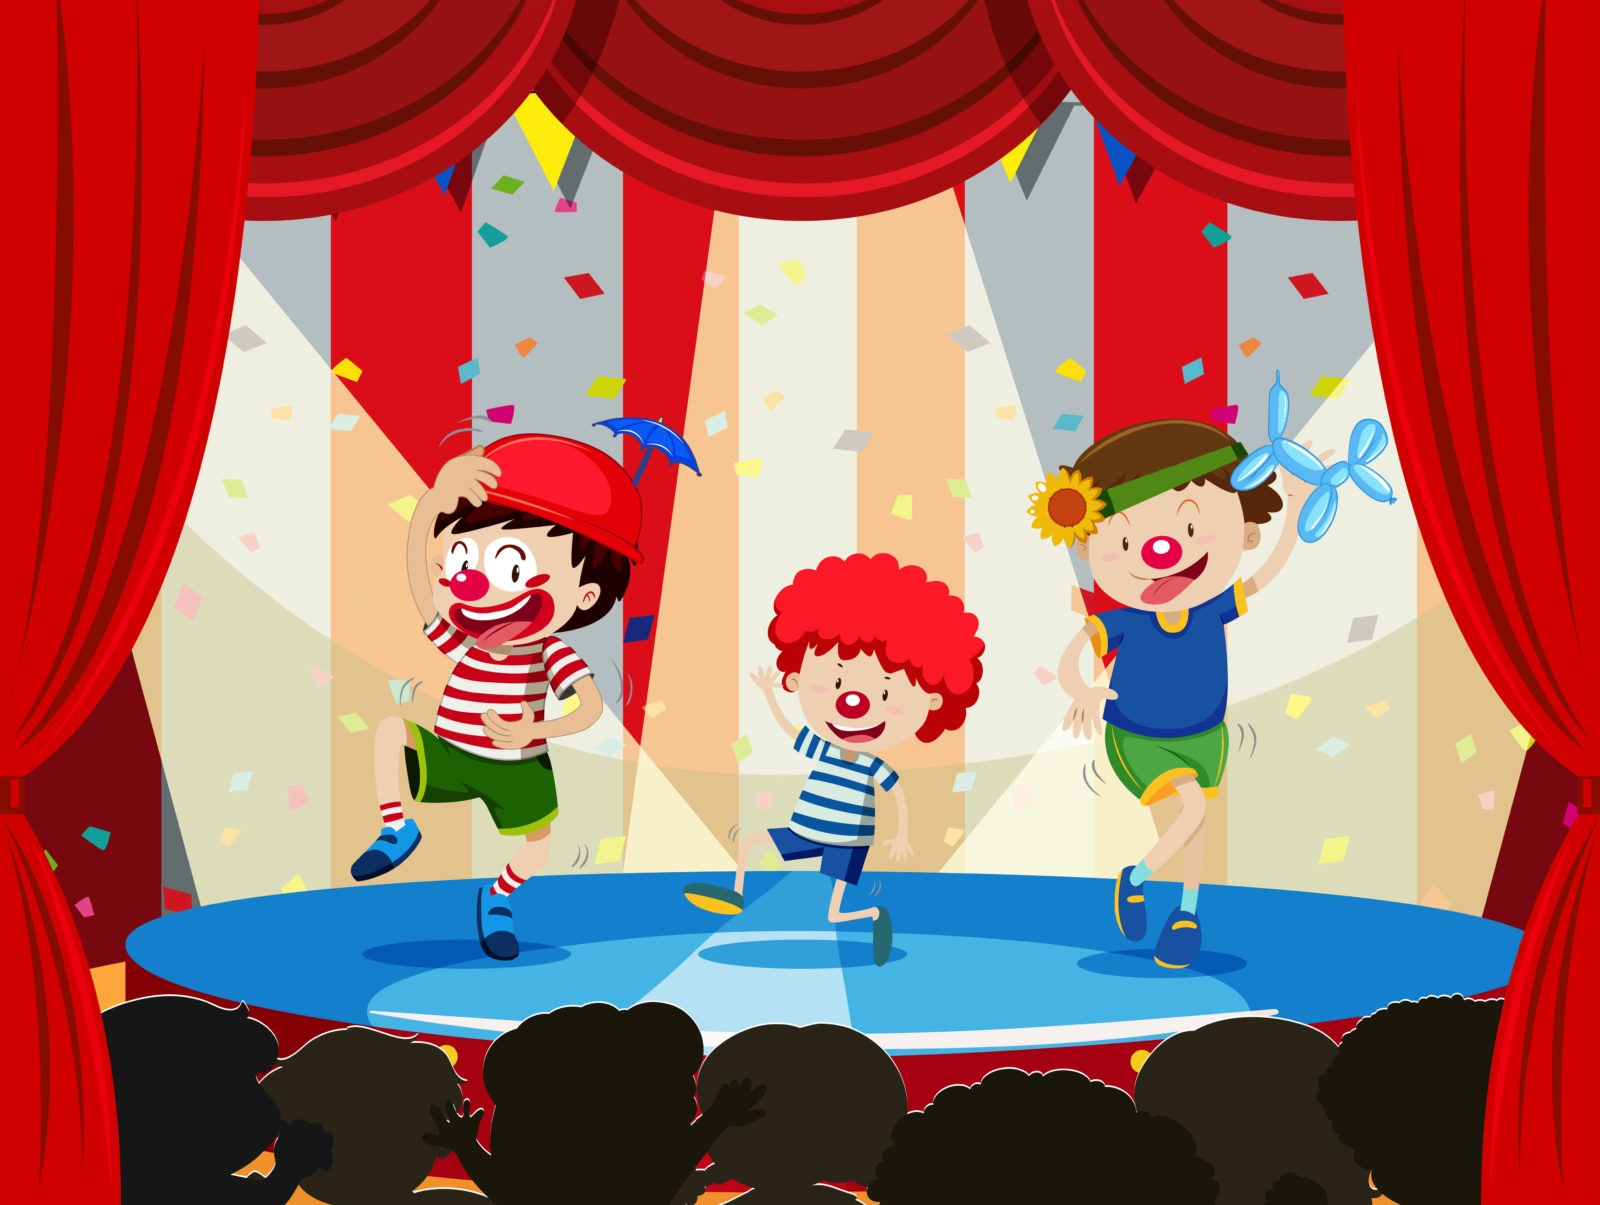 Children performing on stage  illustration